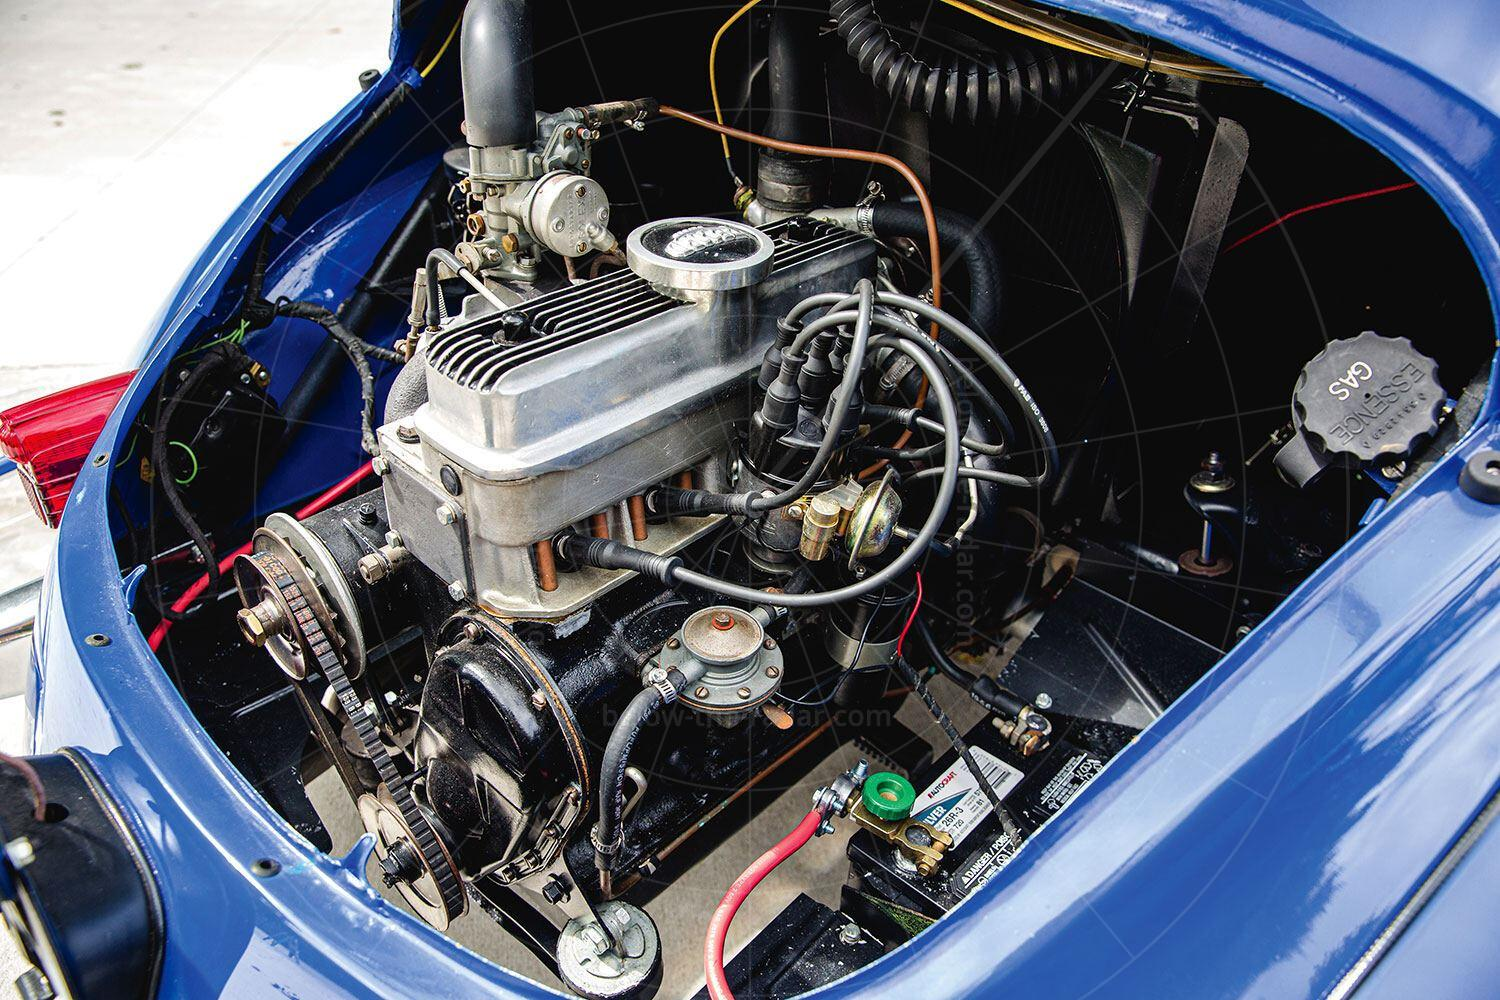 Renault 4CV Jolly engine bay Pic: RM Sotheby's | Renault 4CV Jolly engine bay